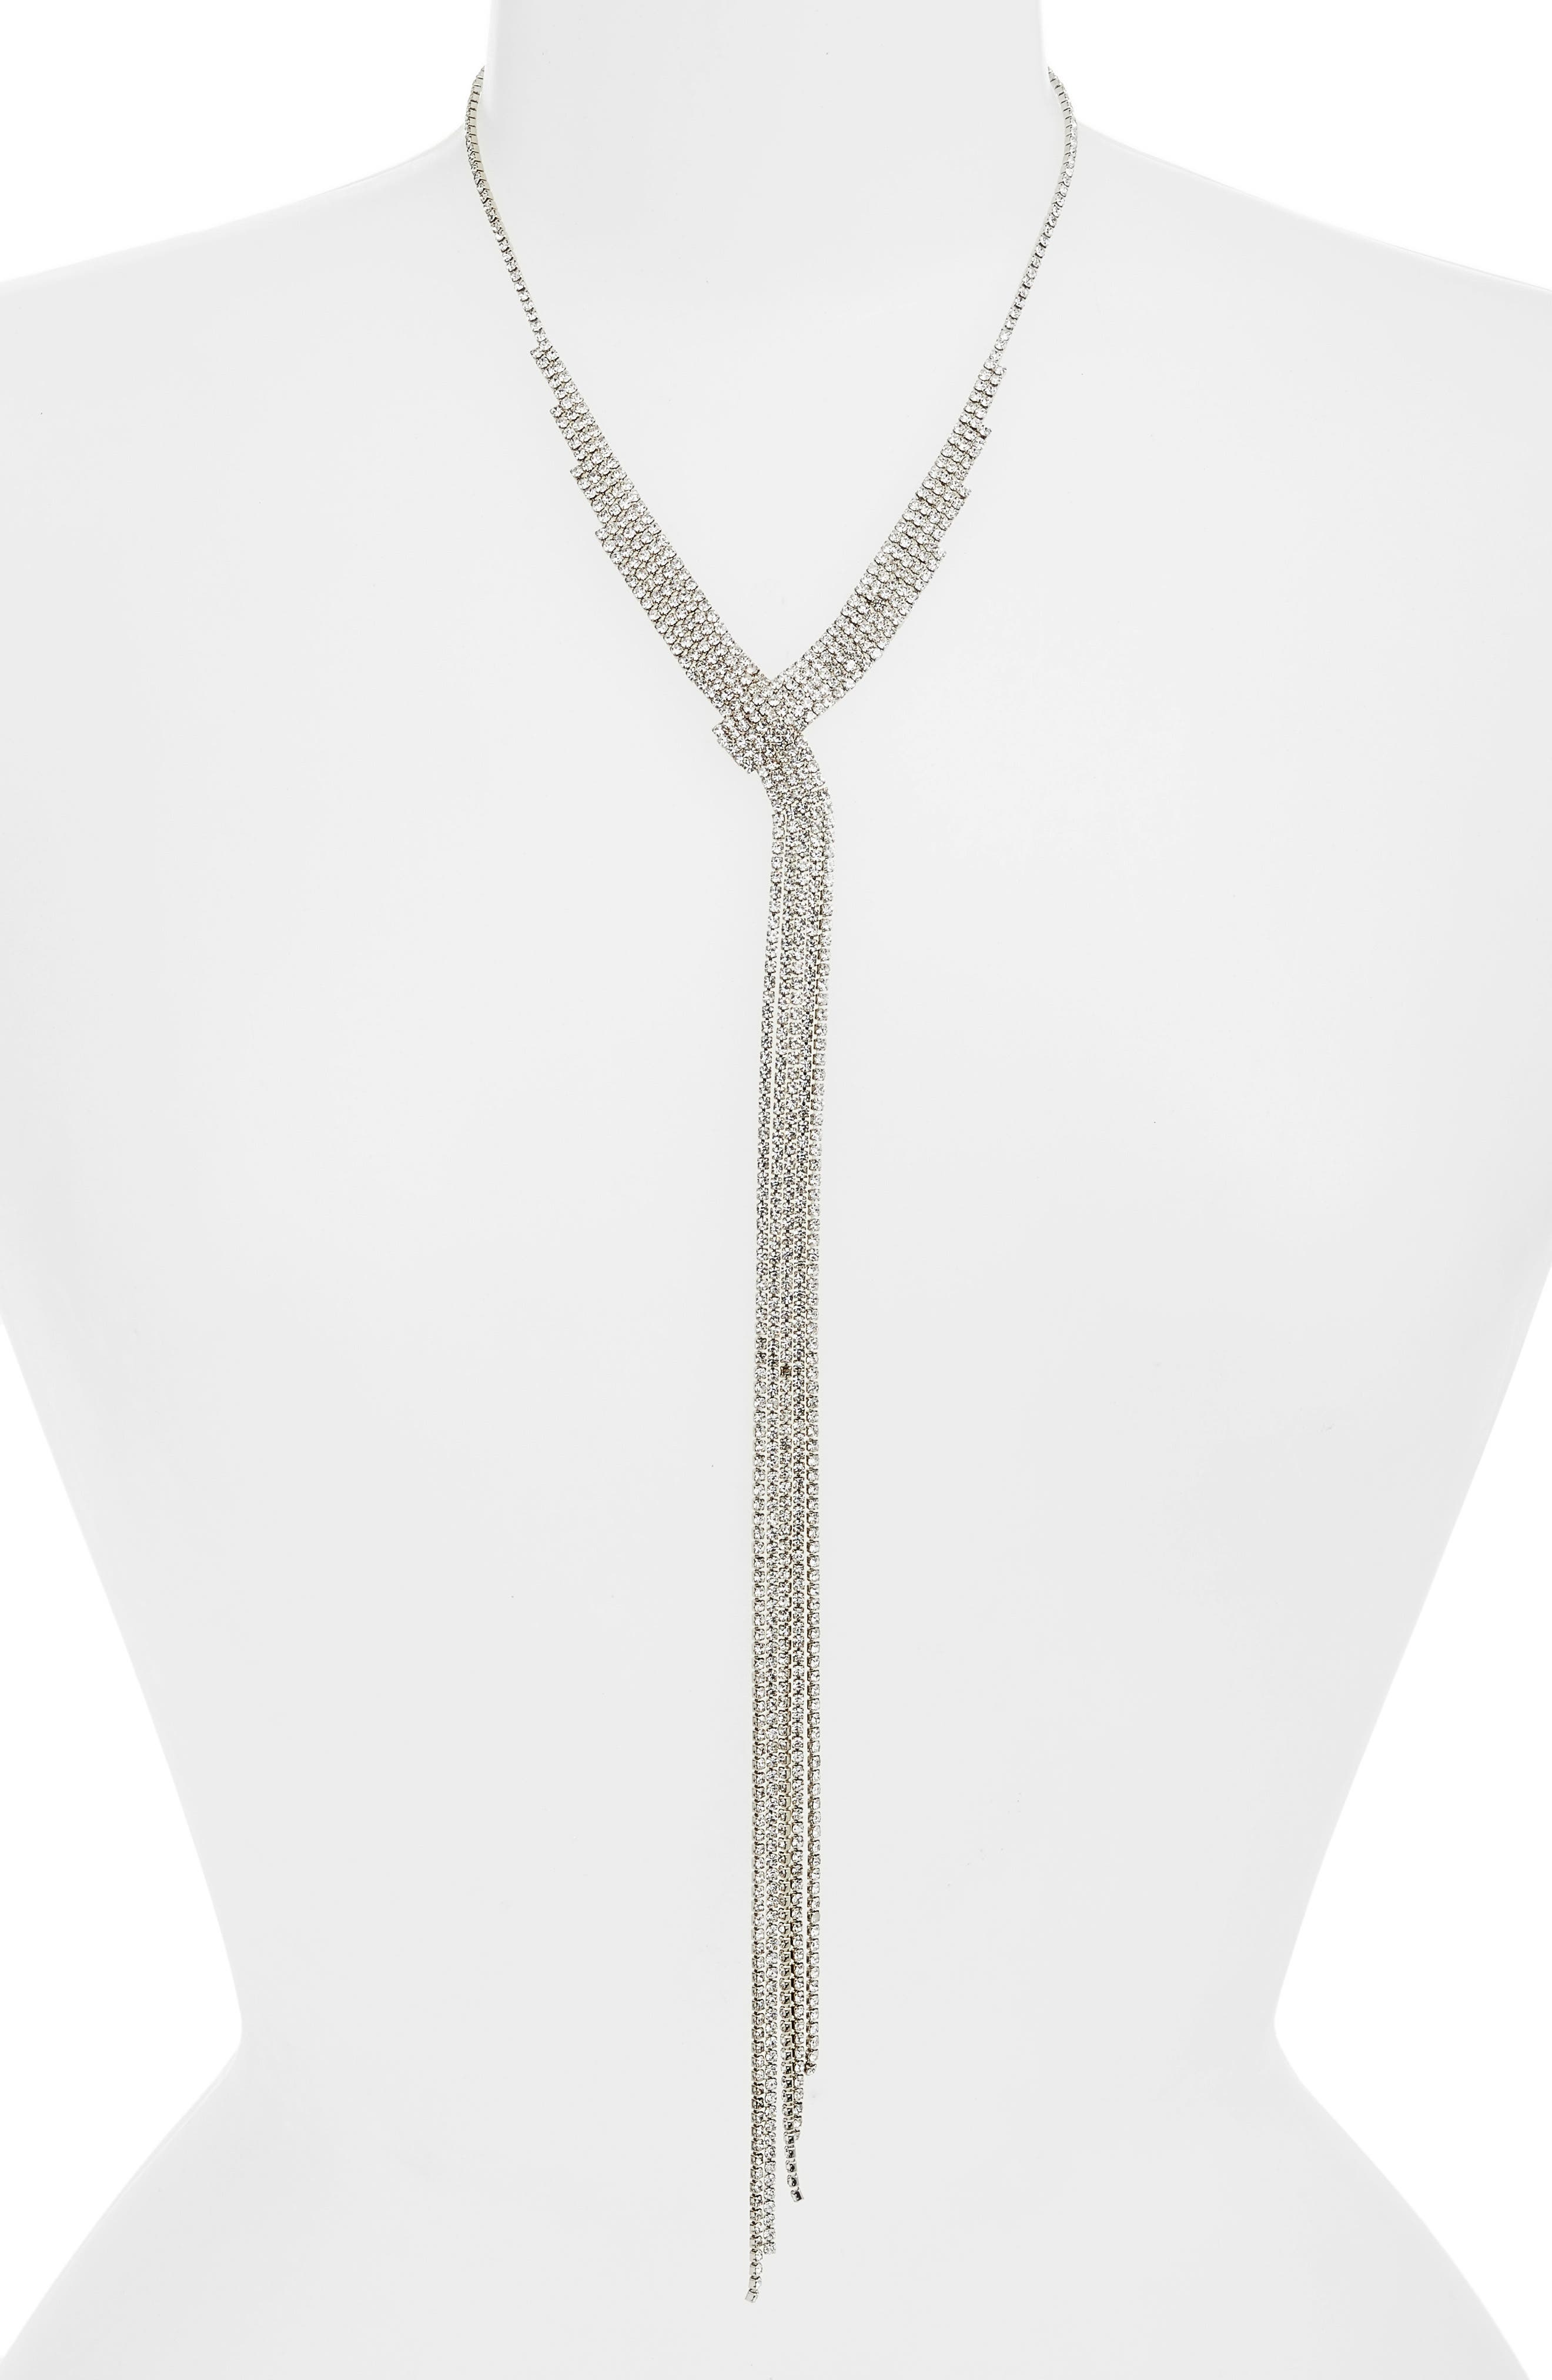 AREA STARS Irene Crystal Fringe Y-Necklace in Clear